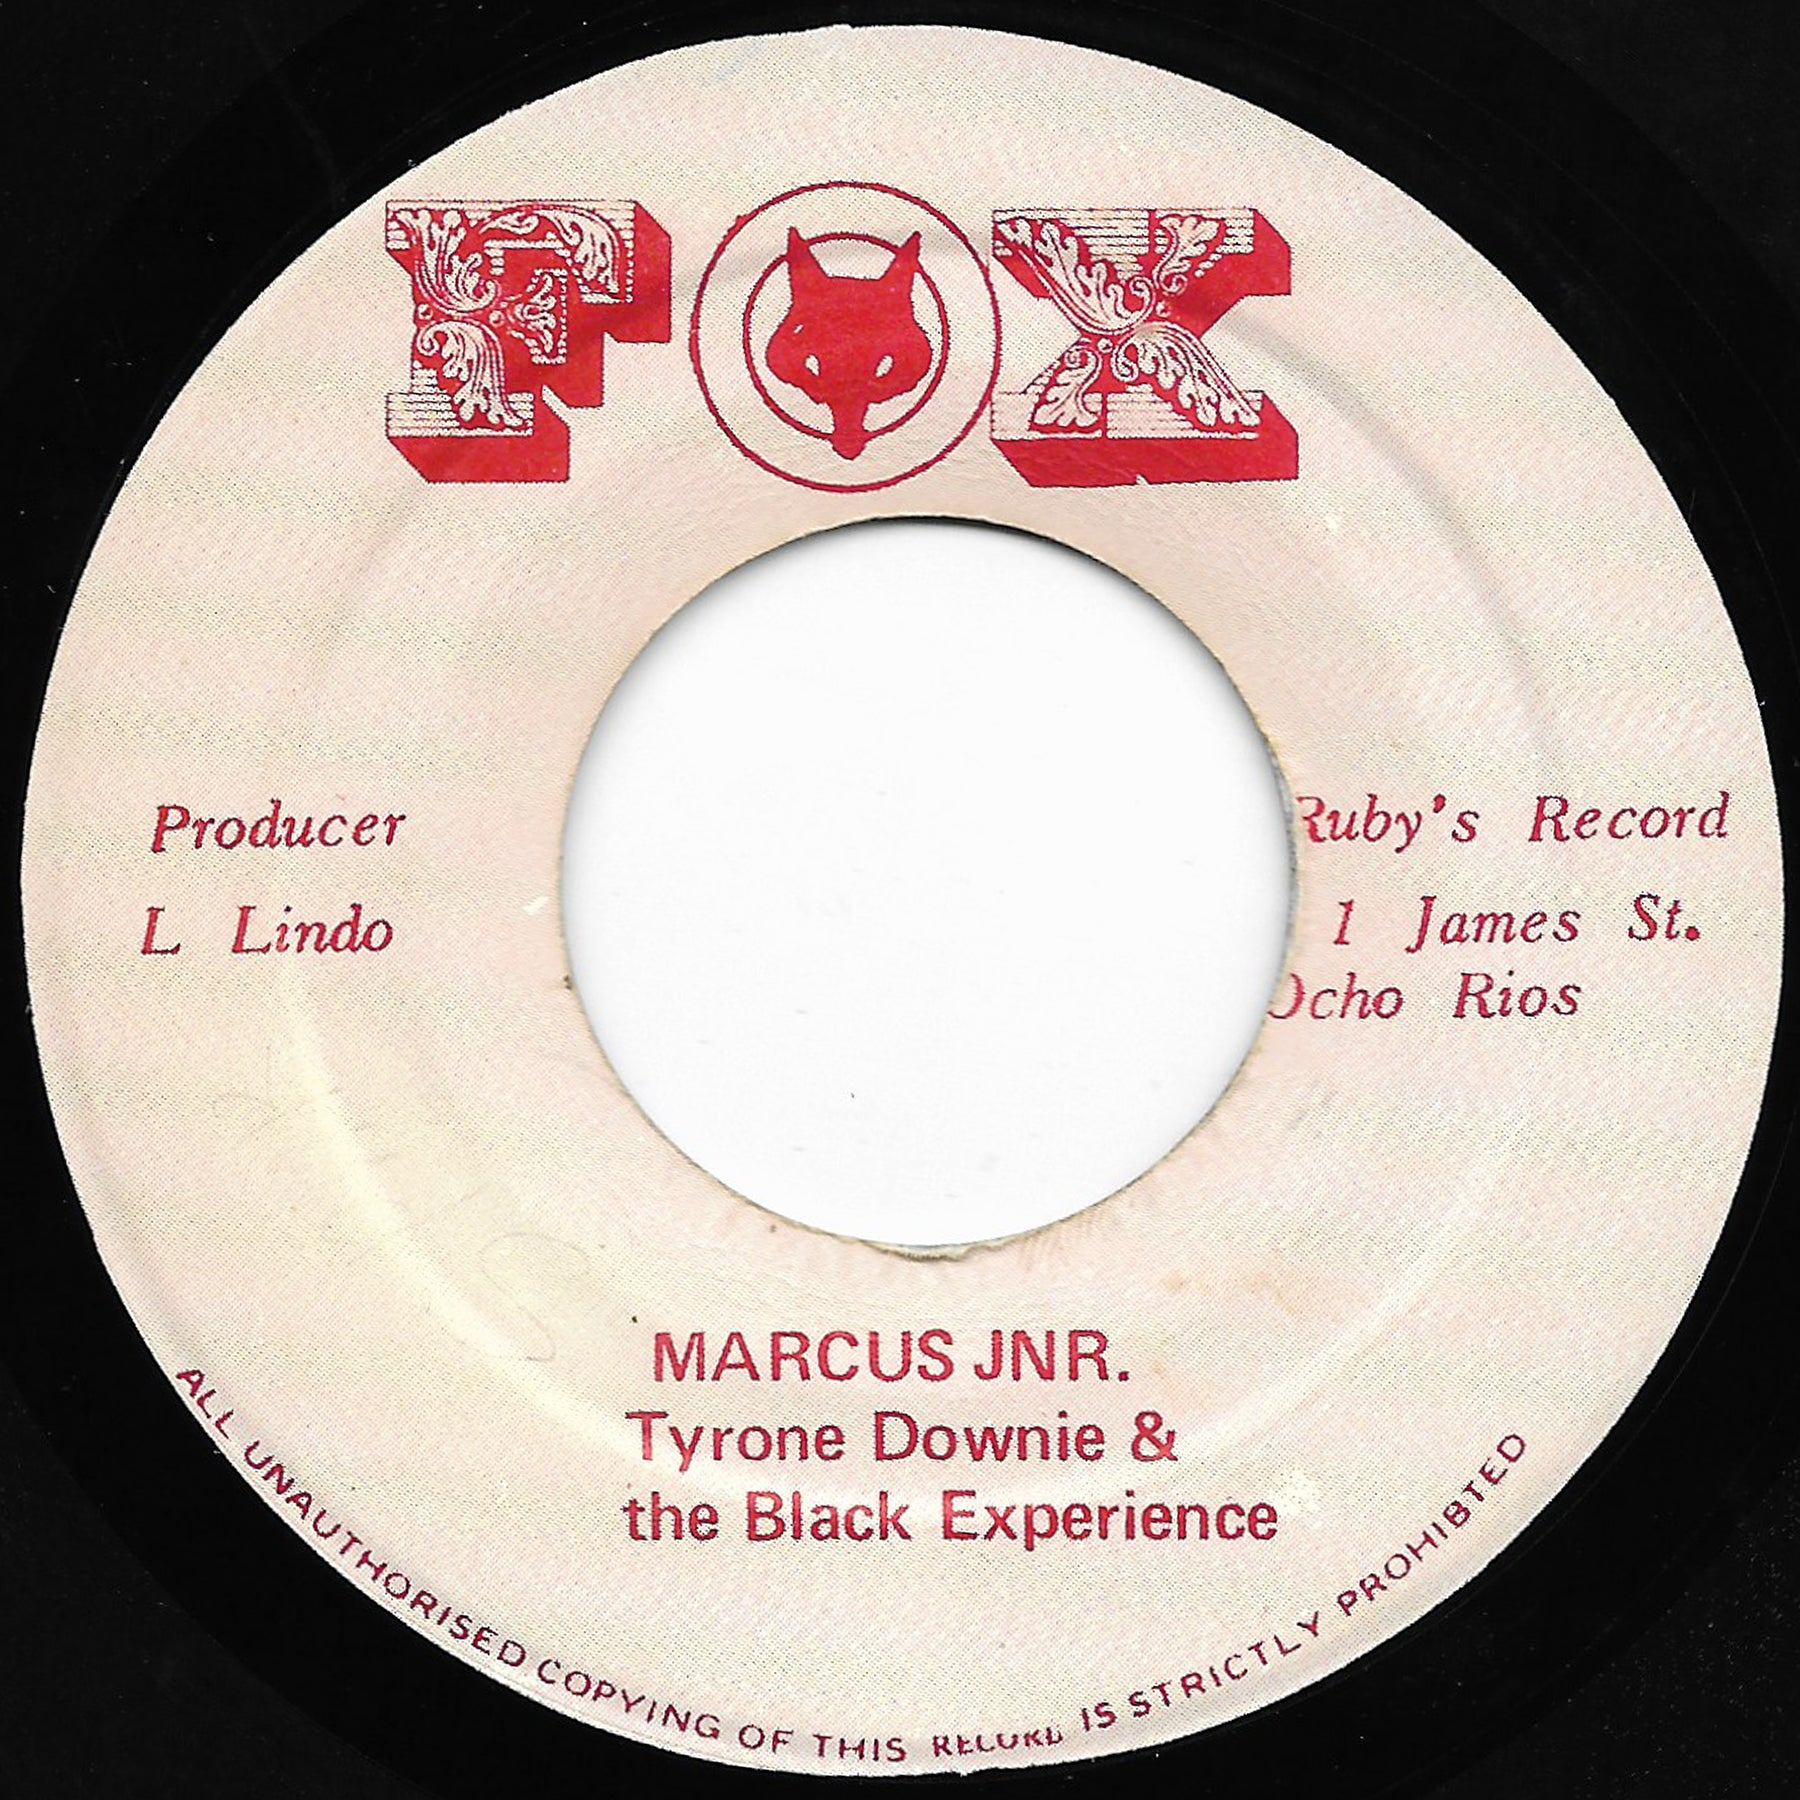 Tyrone Downie & the Black Experience - Marcus JNR.